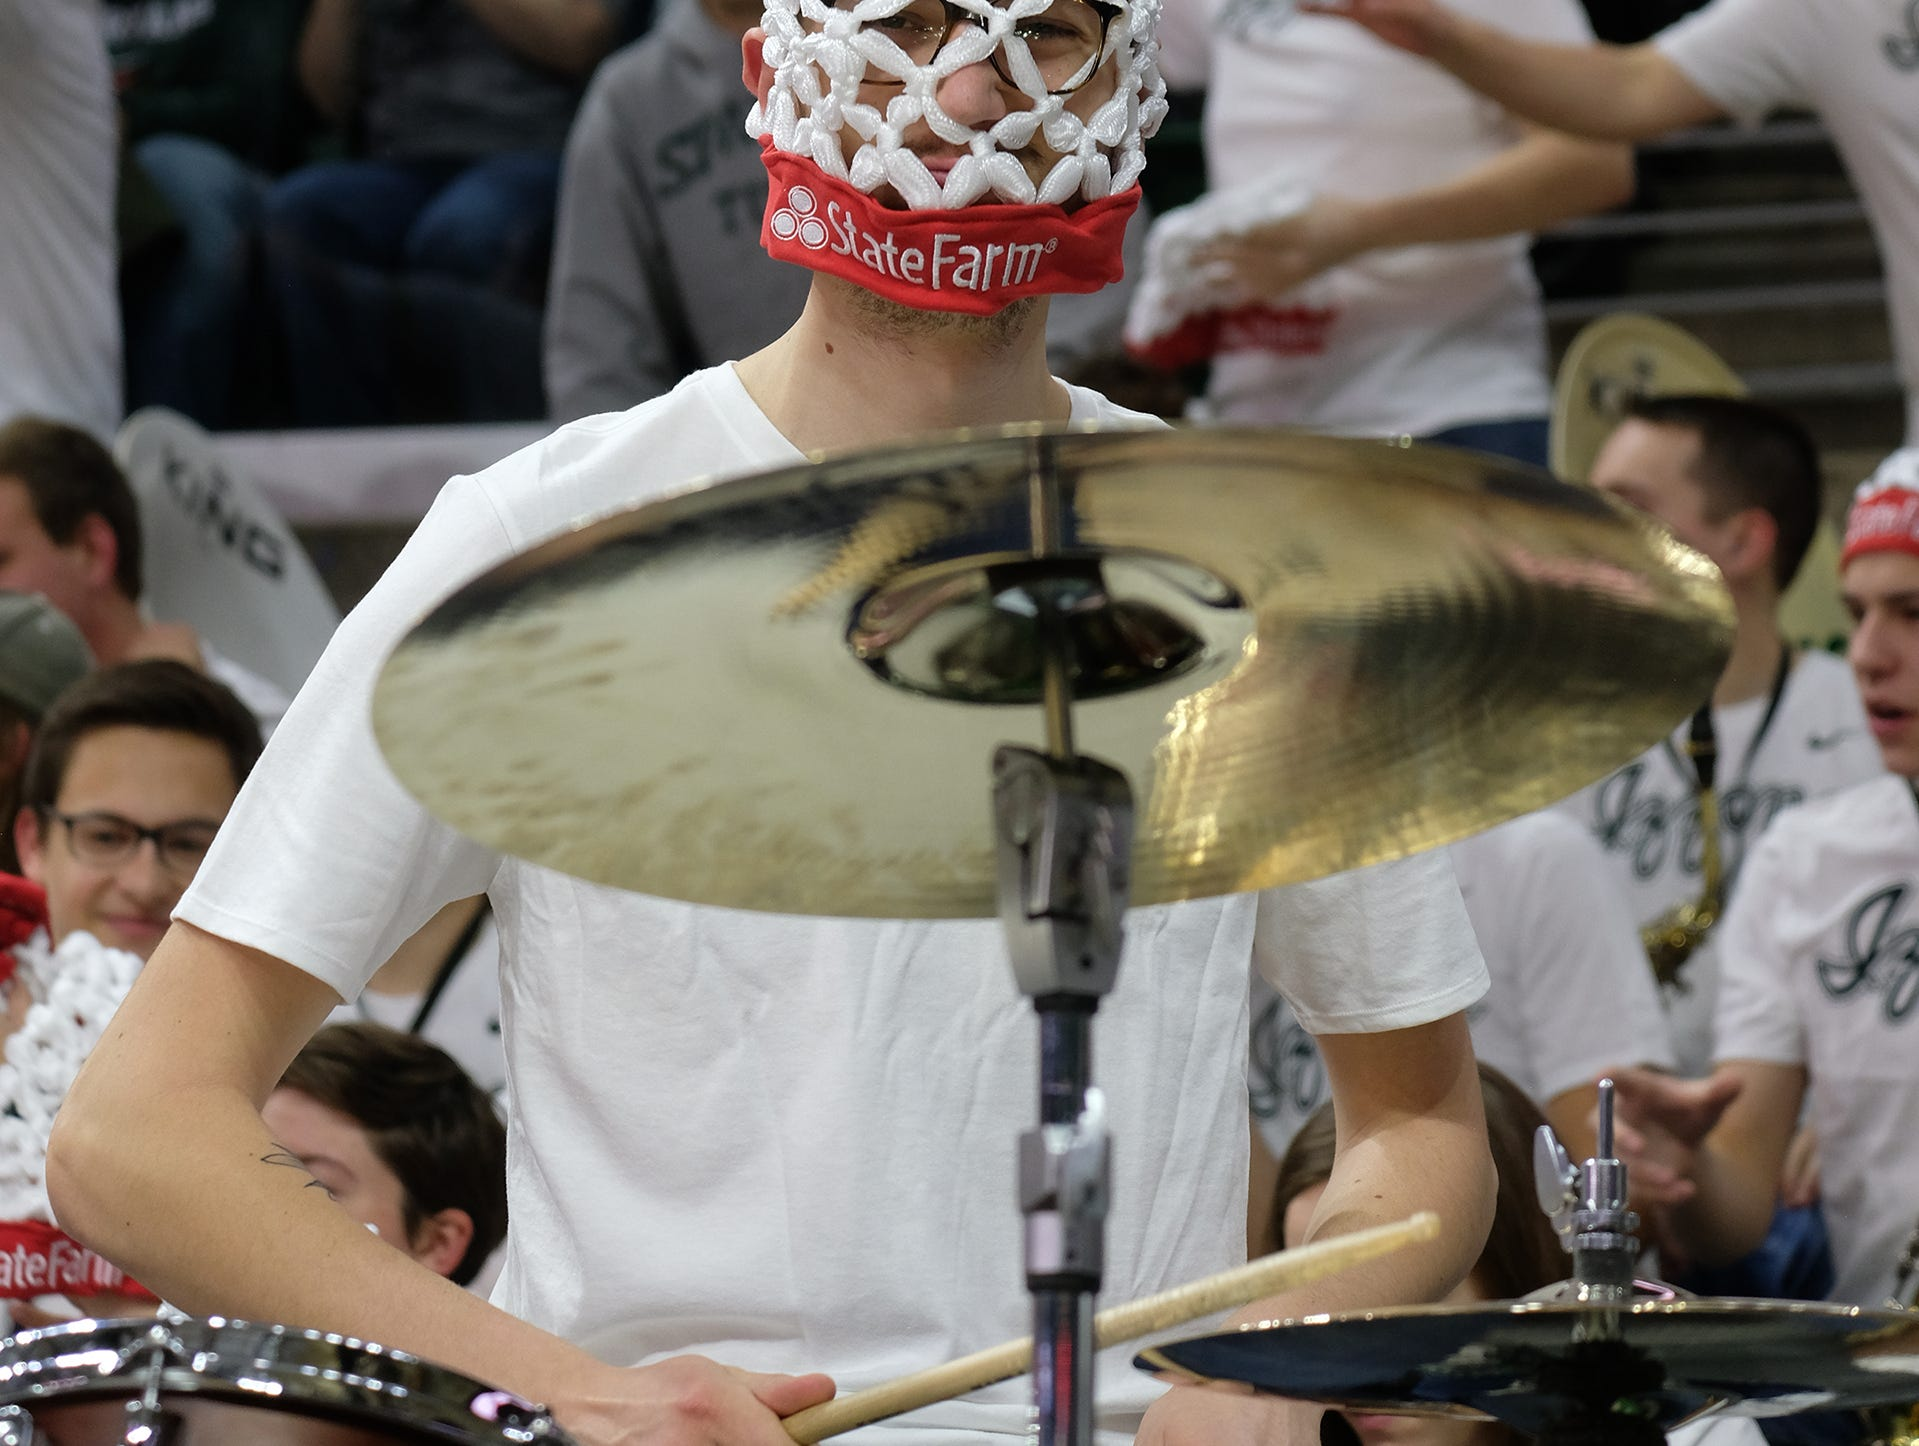 A drummer with some State Farm swag plays at the ESPN College GameDay at MSU Saturday, Feb. 2, 2019.